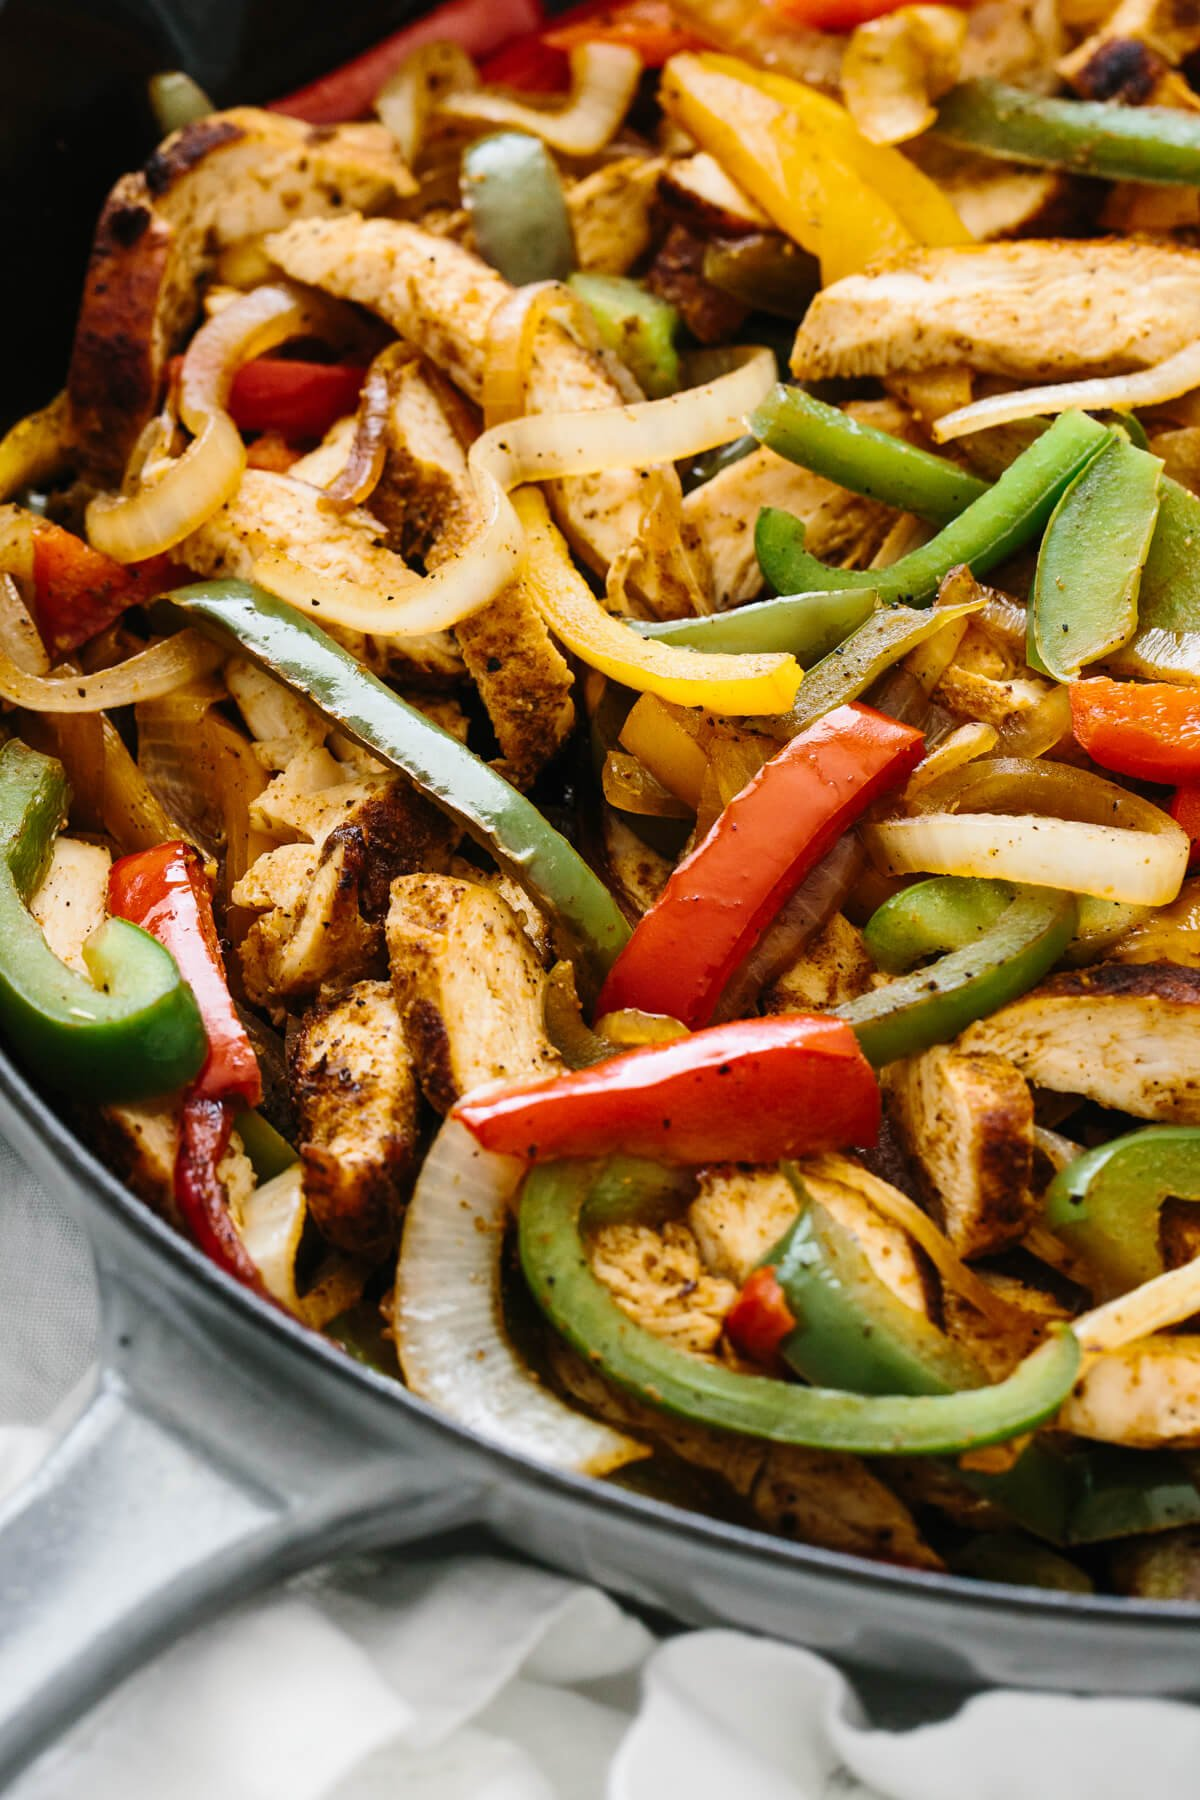 Chicken fajitas in a saute pan.